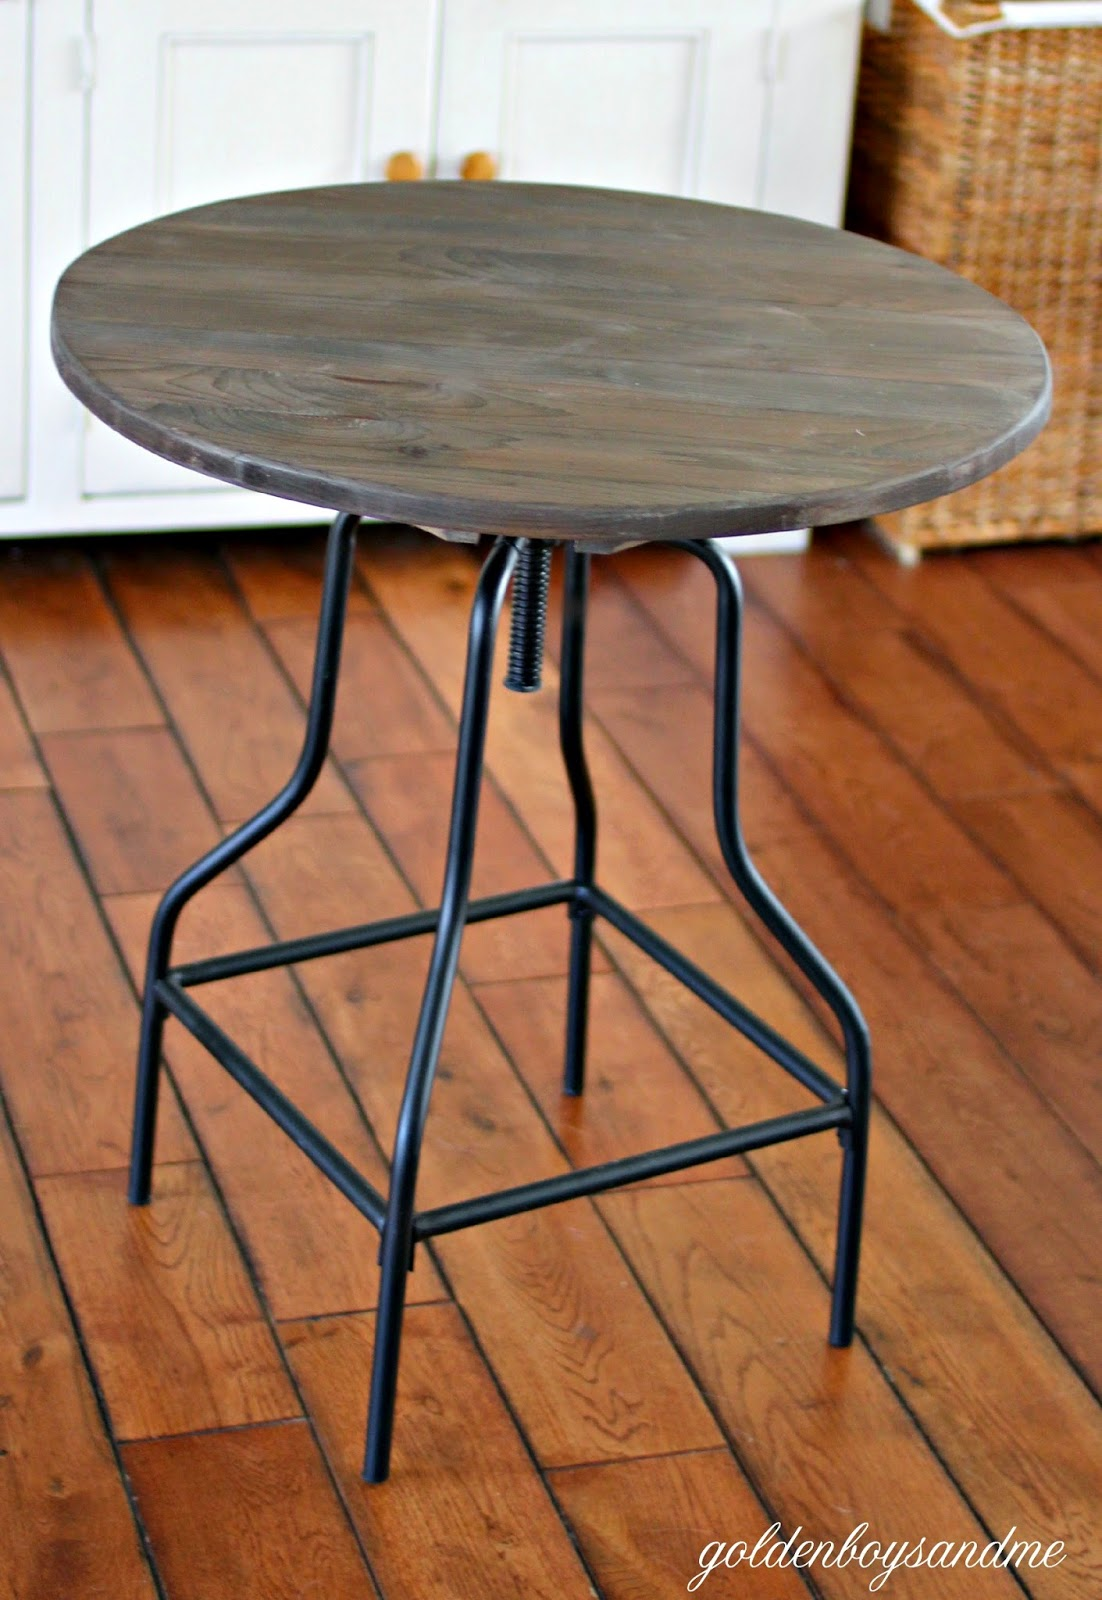 DIY side table made with industrial stool-www.goldenboysandme.com